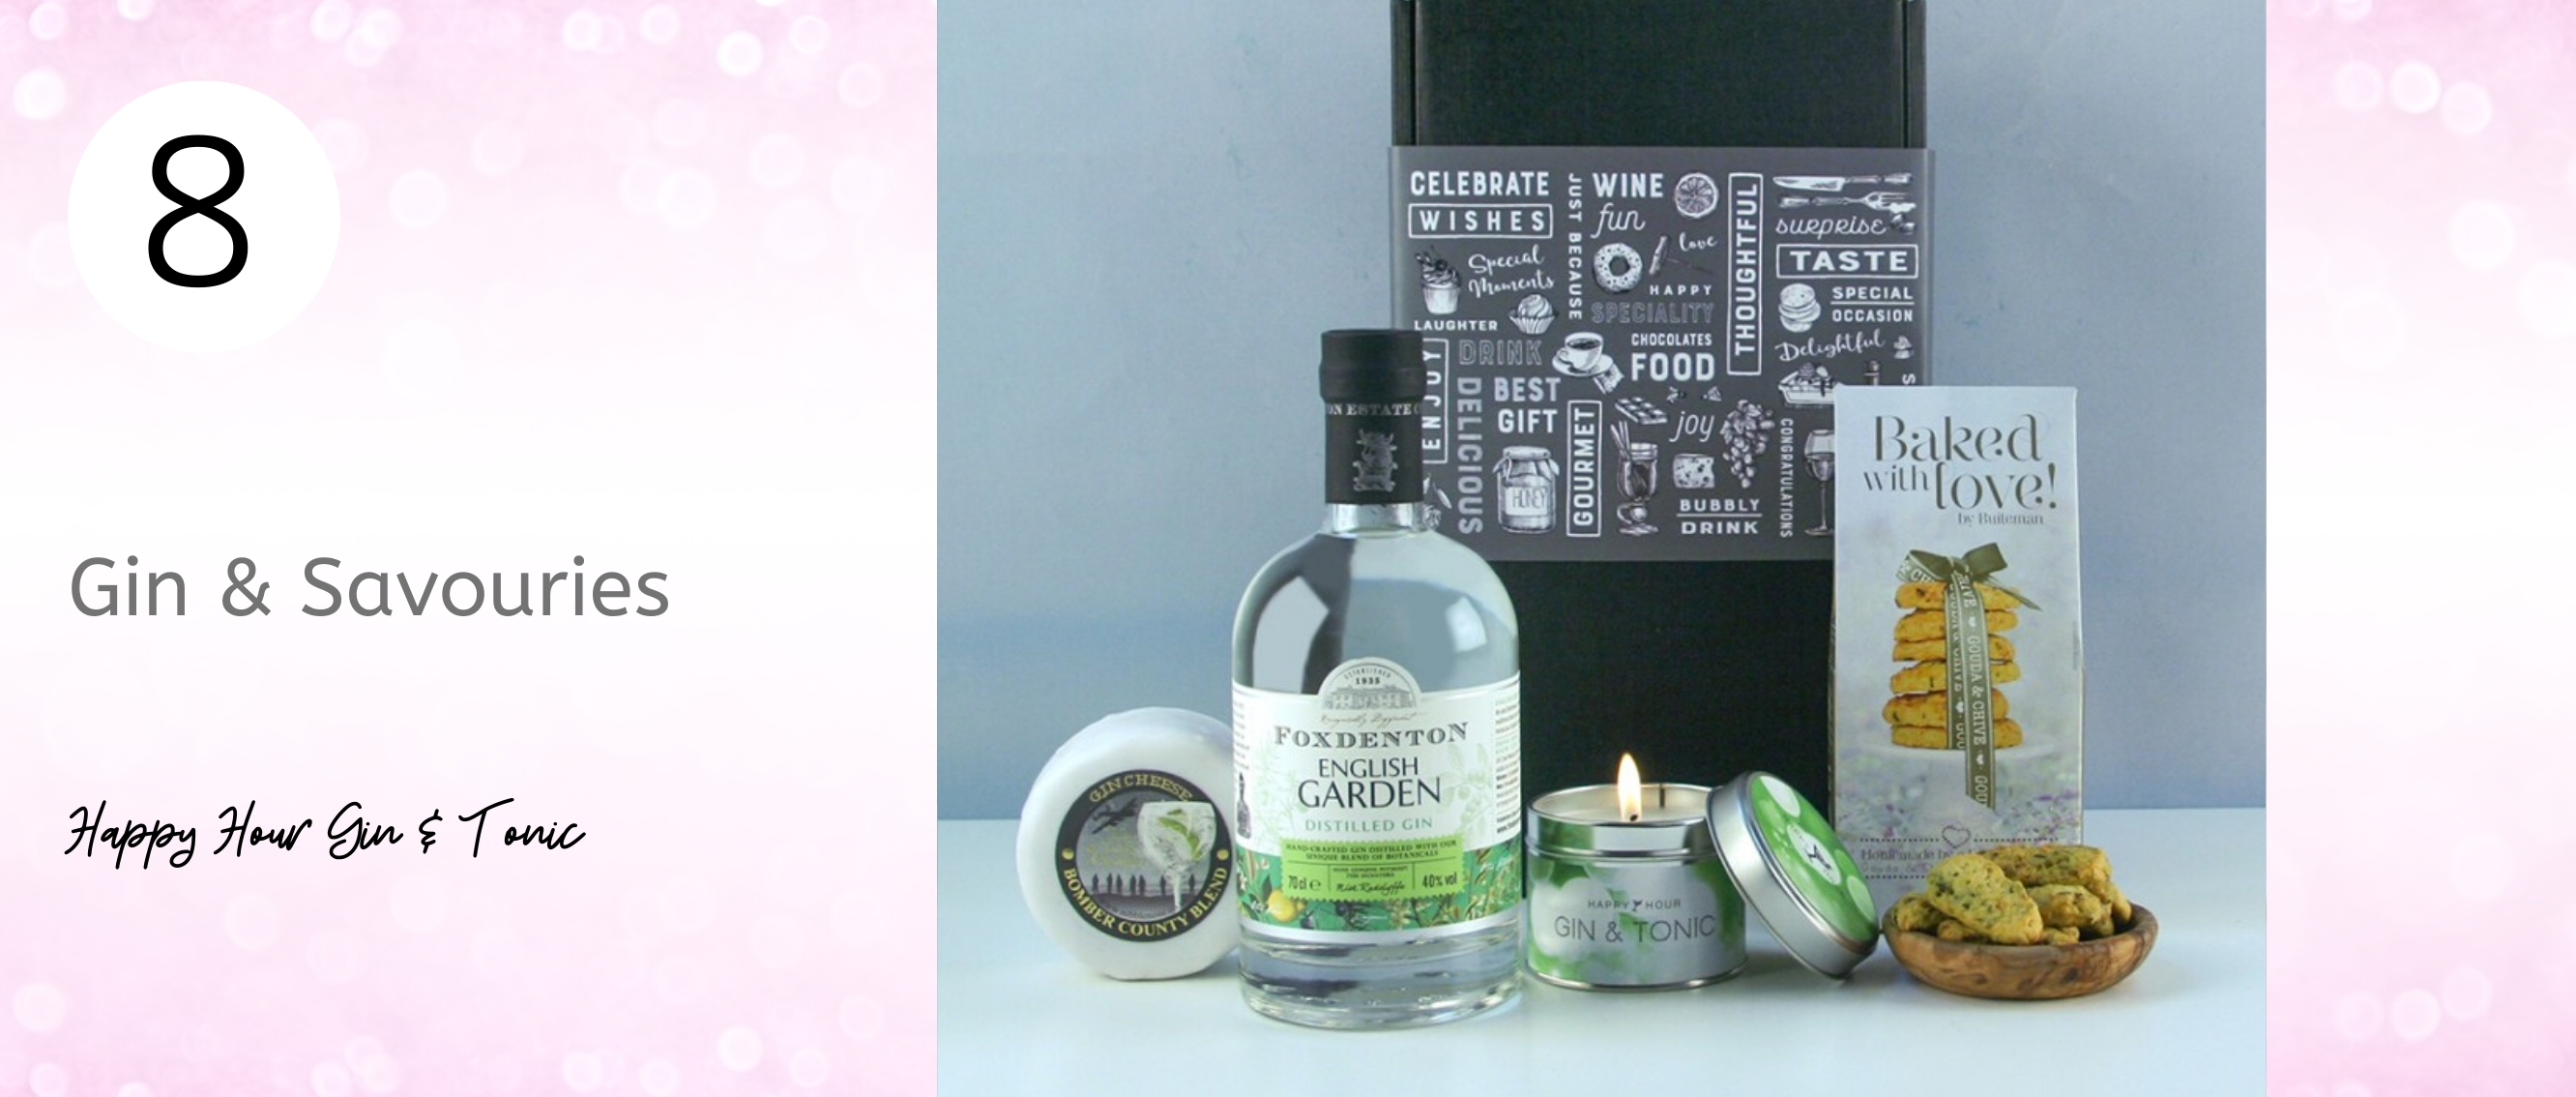 Gin hamper for Mother's Day gift idea.... foxdenton gourmet food hamper